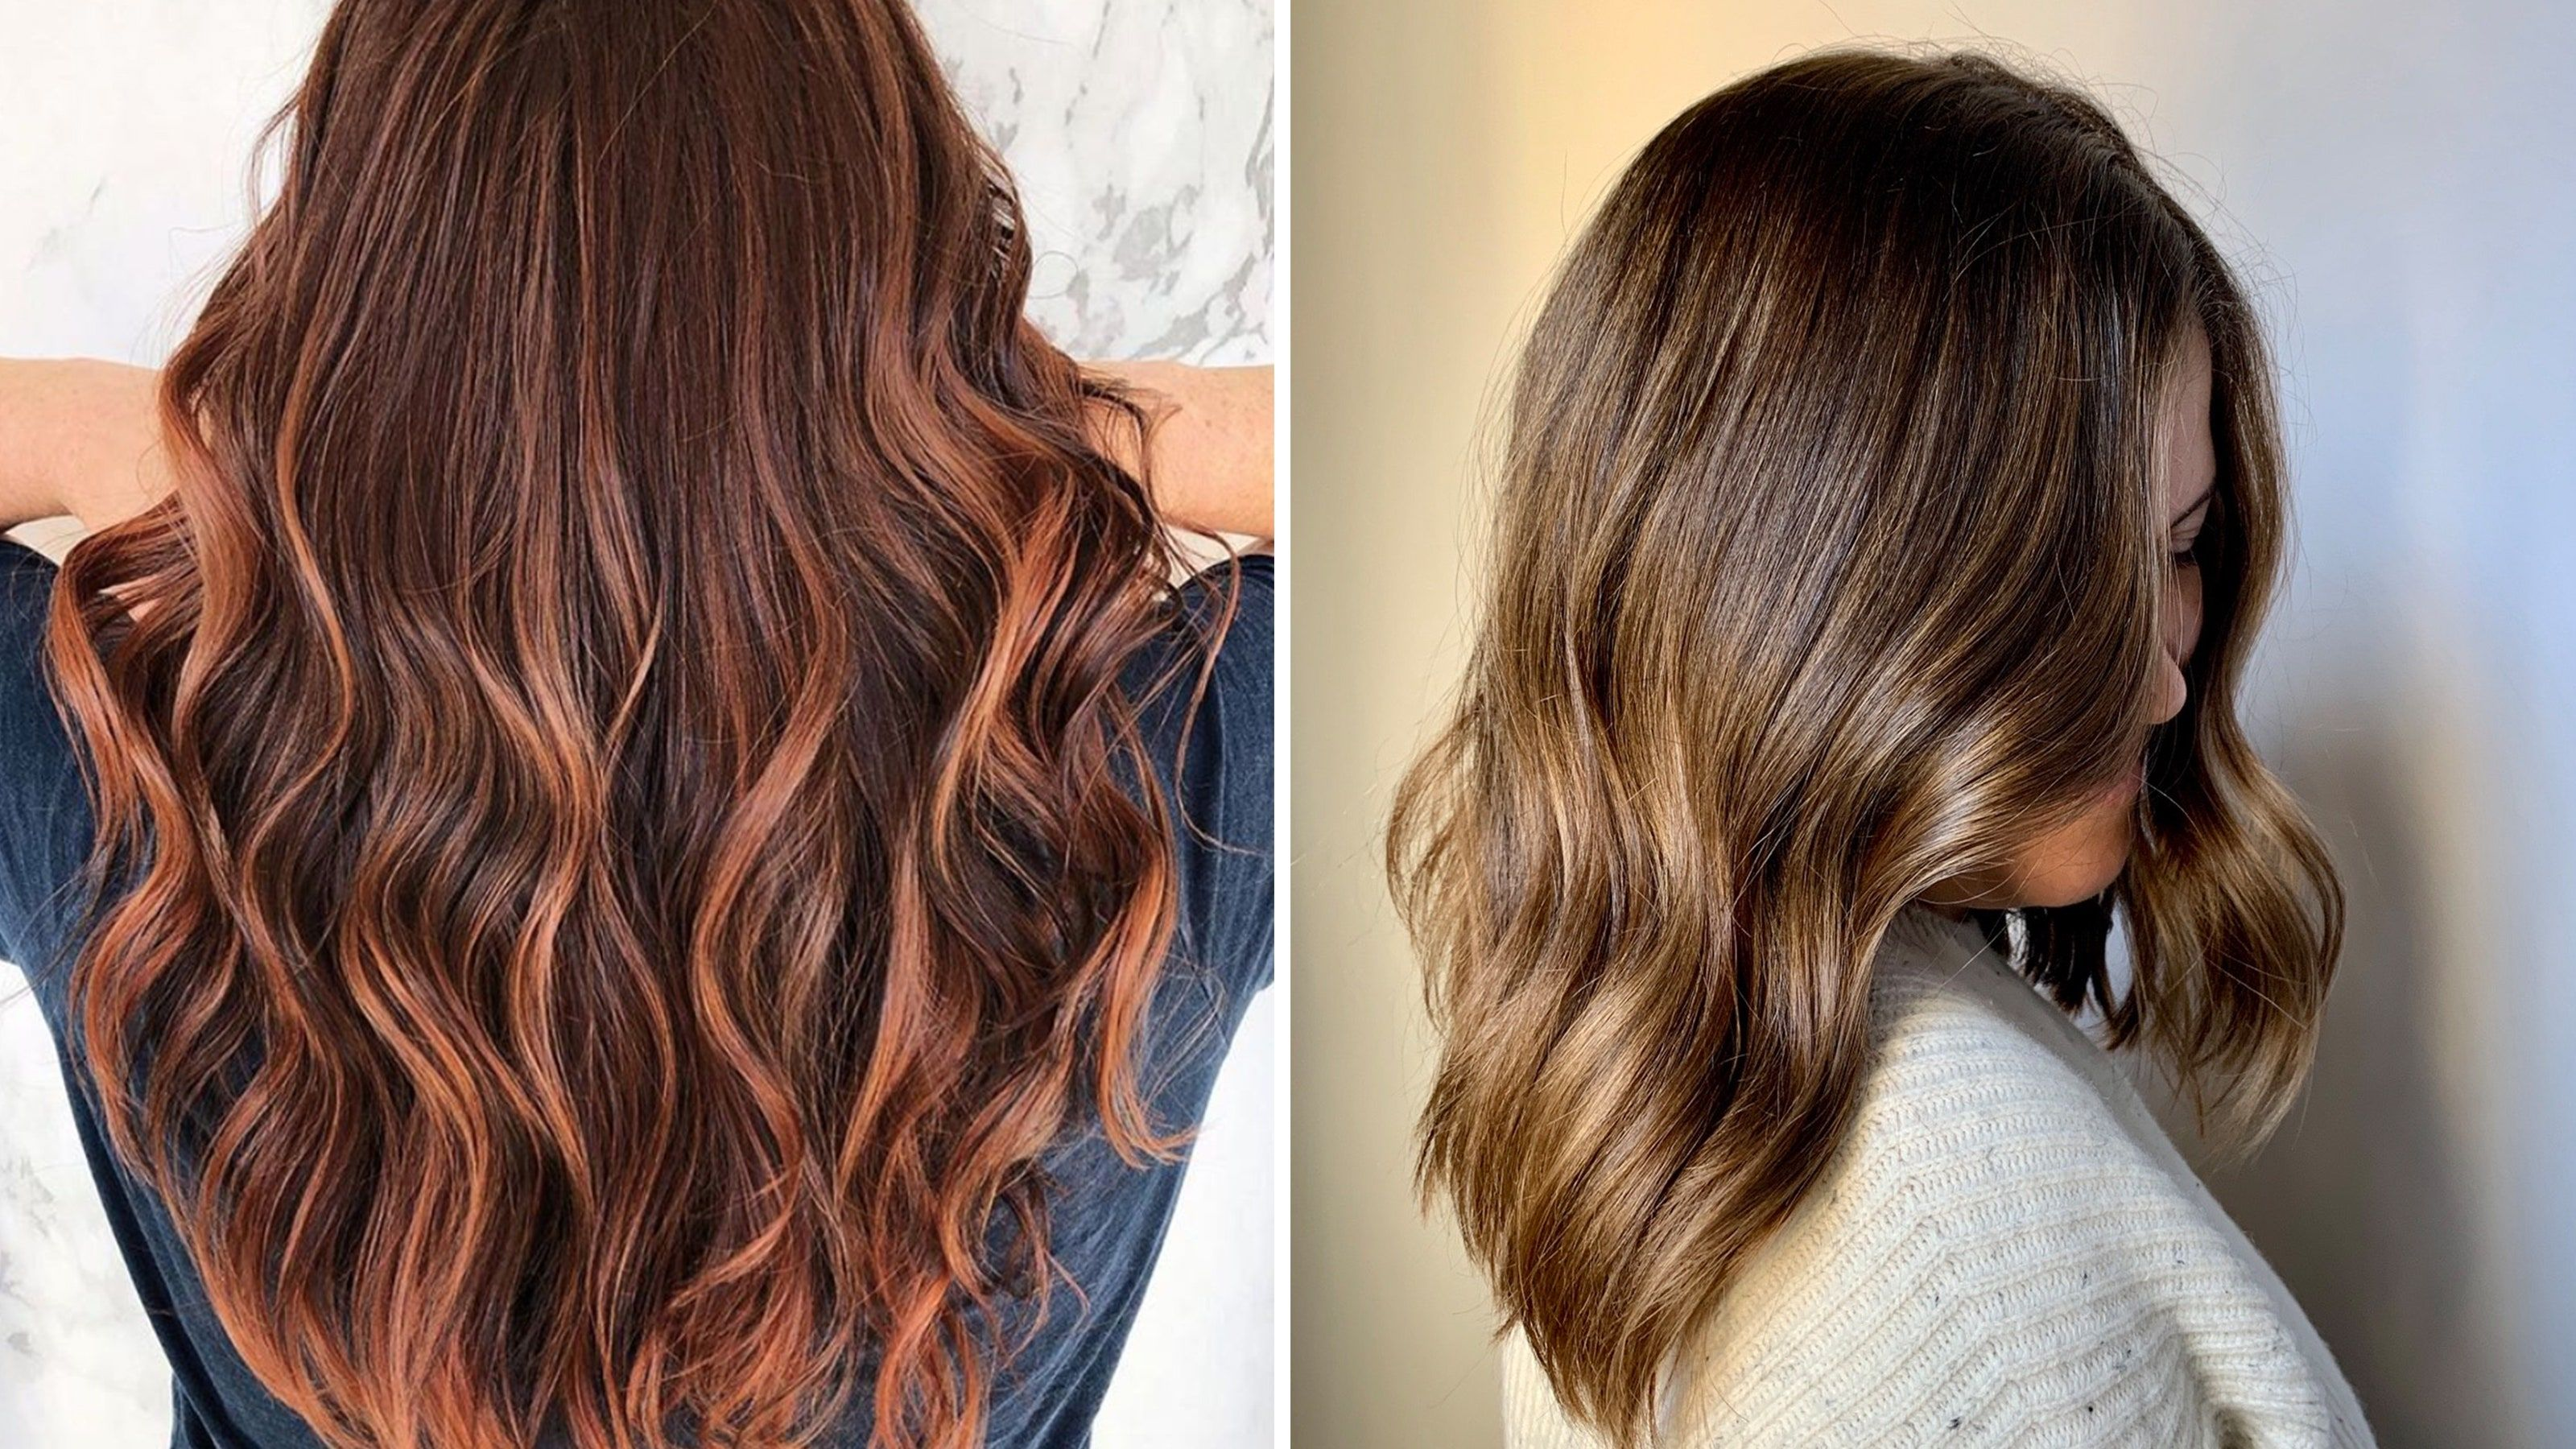 Thin Long Round Face In 2020 Korean Hair Color Hair Color Trends Hair Styles